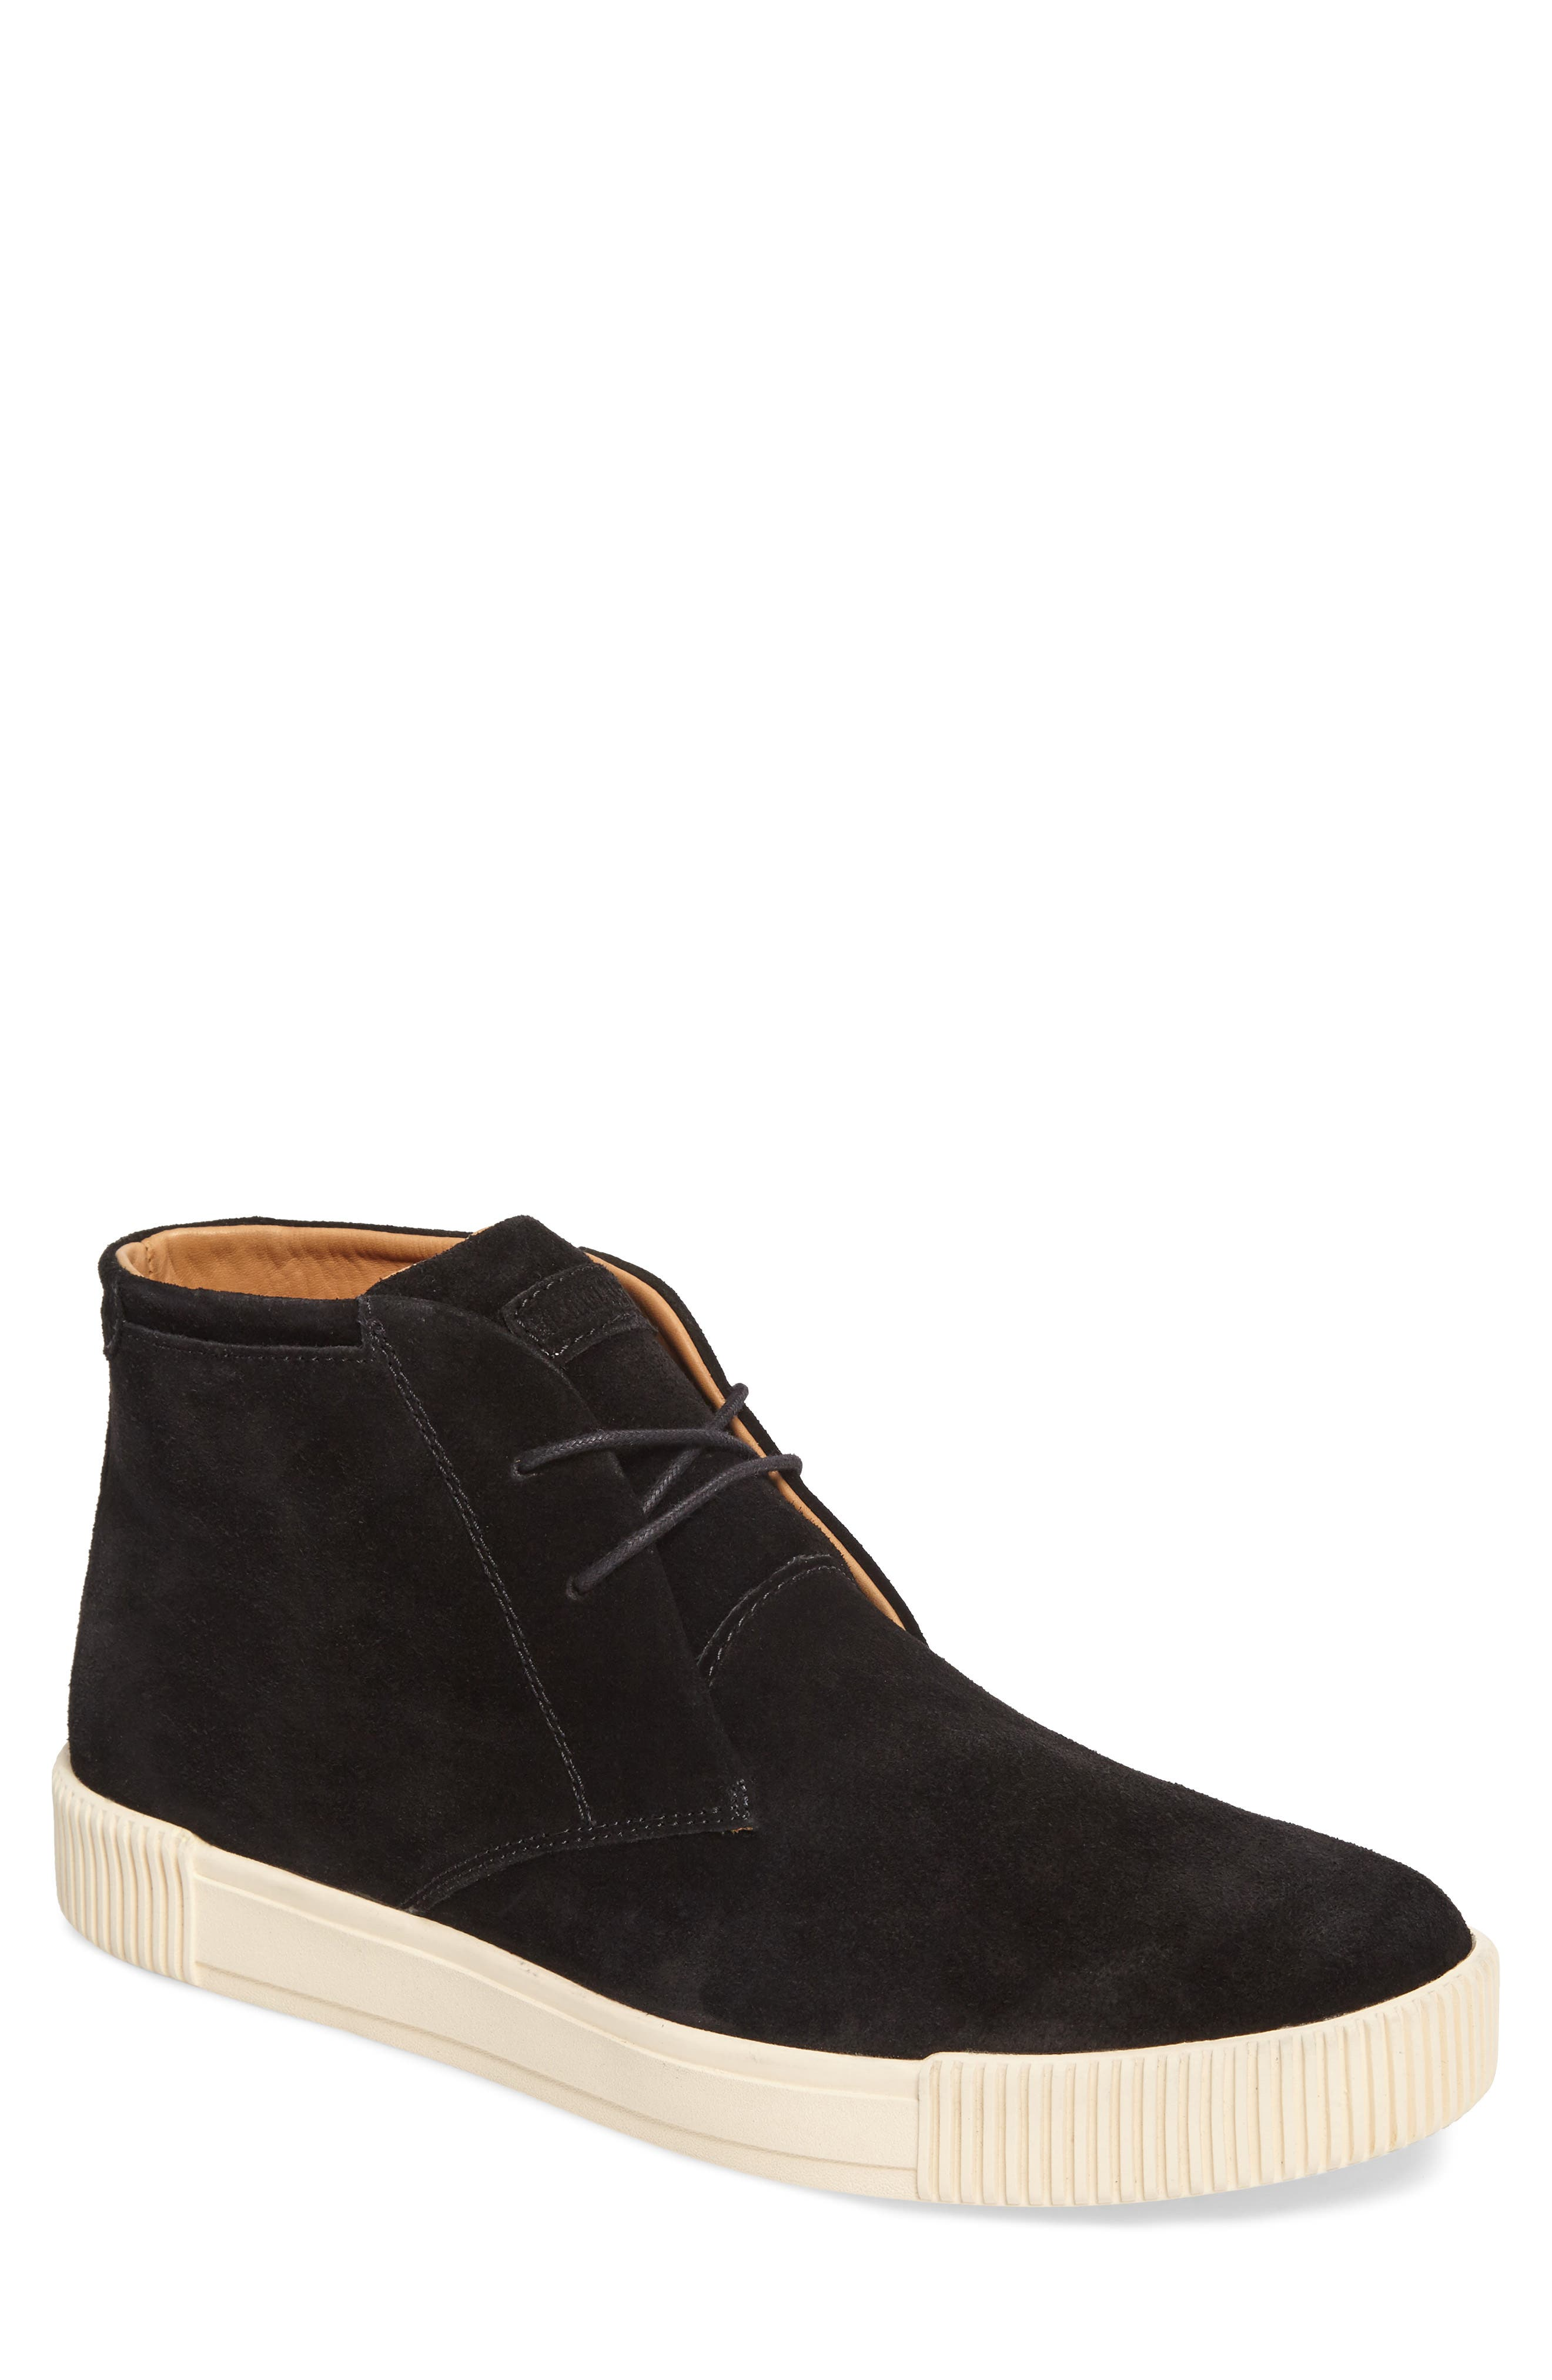 Lyons Chukka Sneaker,                         Main,                         color, BLACK SUEDE